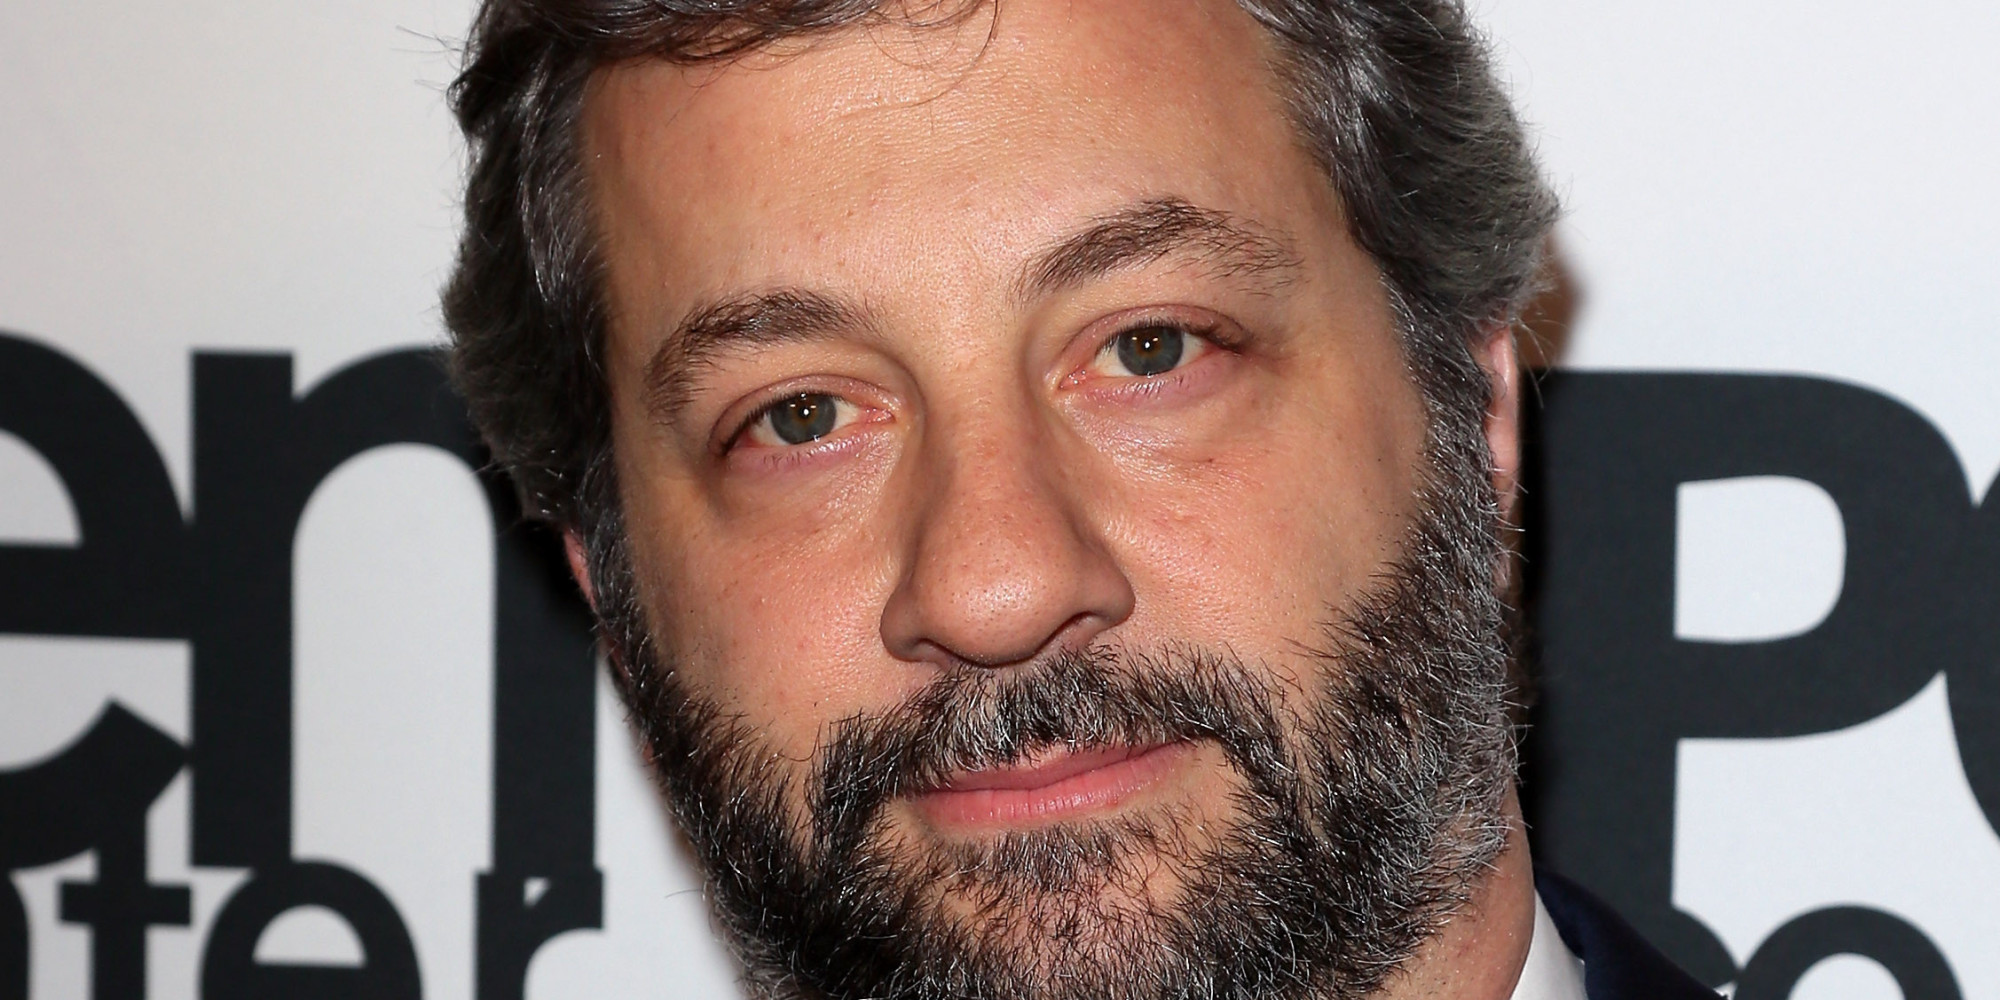 Judd Apatow Judd Apatow Blasts Centre In